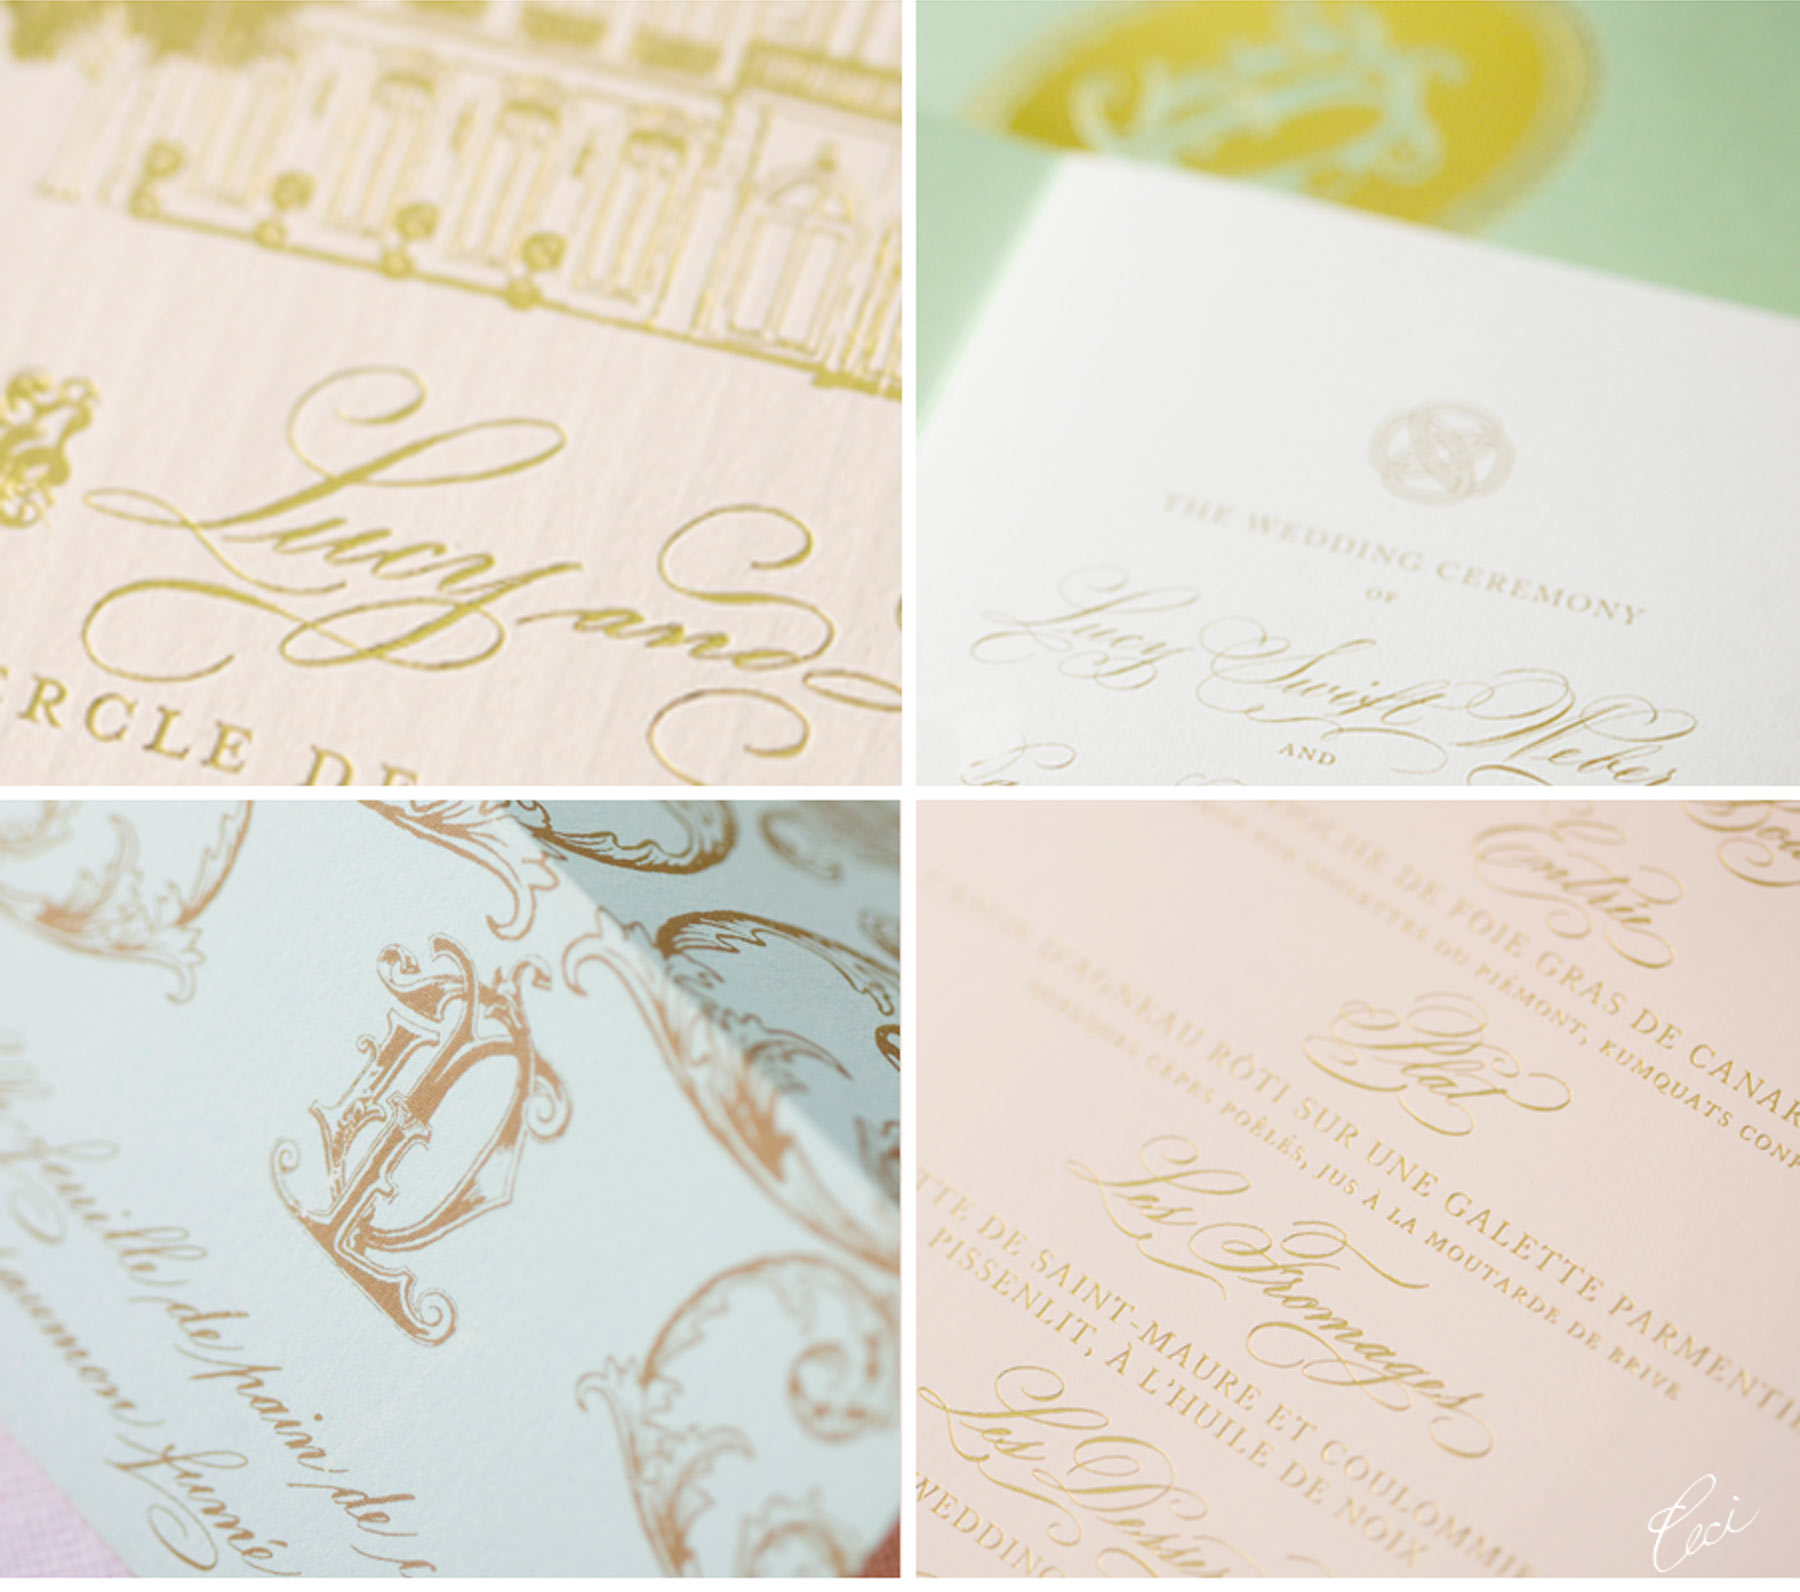 Luxury Wedding Invitations by Ceci New York - Our Muse - Romantic Parisian Wedding - Be inspired by Lucy & Noah's romantic Parisian wedding - wedding, escort cards, programs, menus, signs, foil printing, digital printing, hand calligraphy, laser cut printing, die cutting